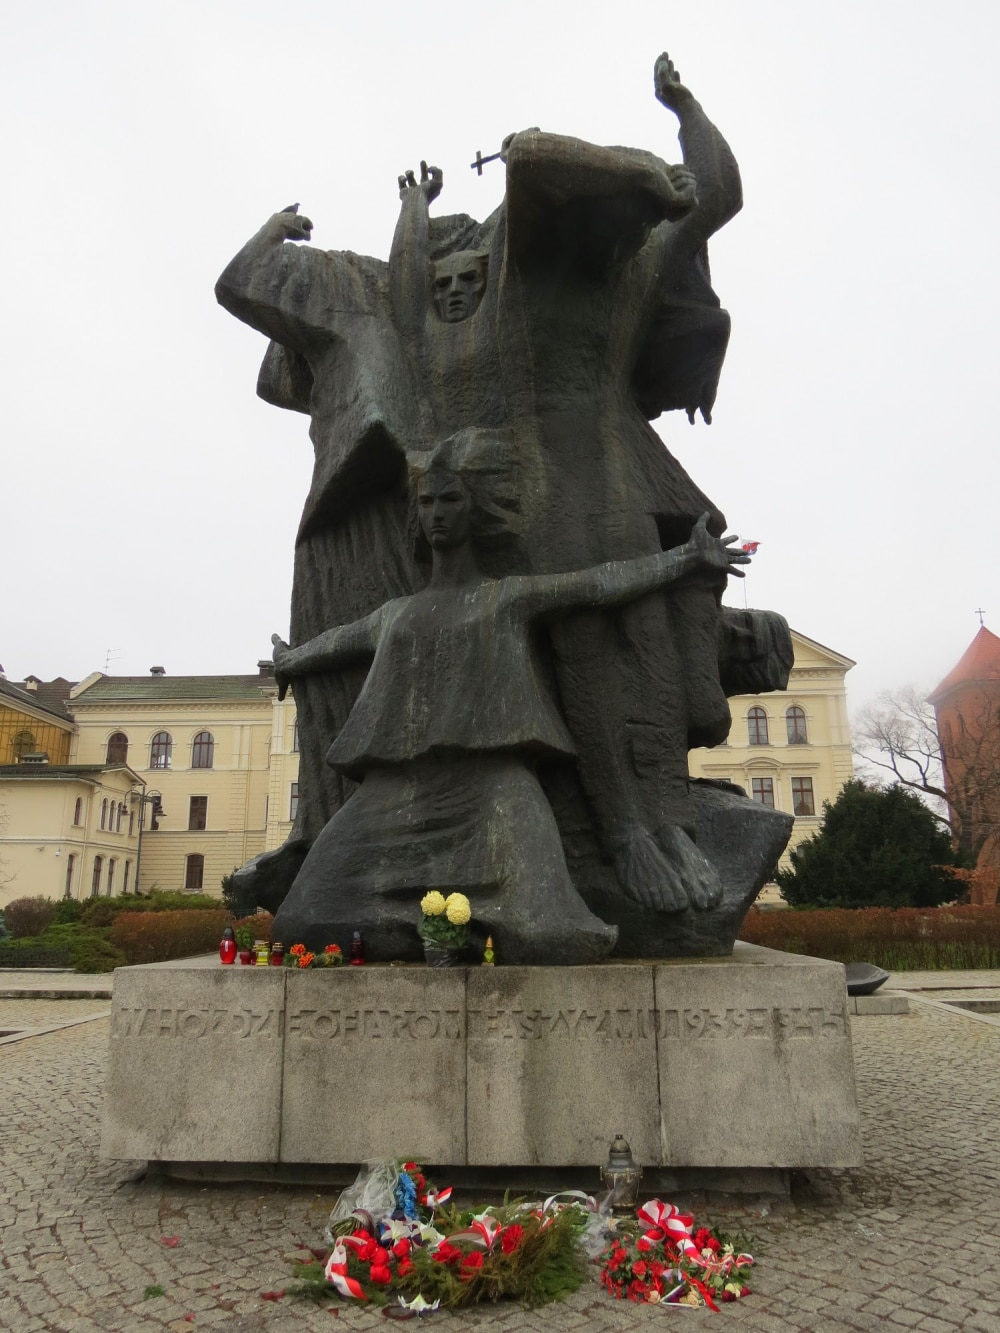 The Monument for War Victims in Bydgoszcz commemorates those who died in the city during WWII #statue #WWII #Bydgoszcz #Poland